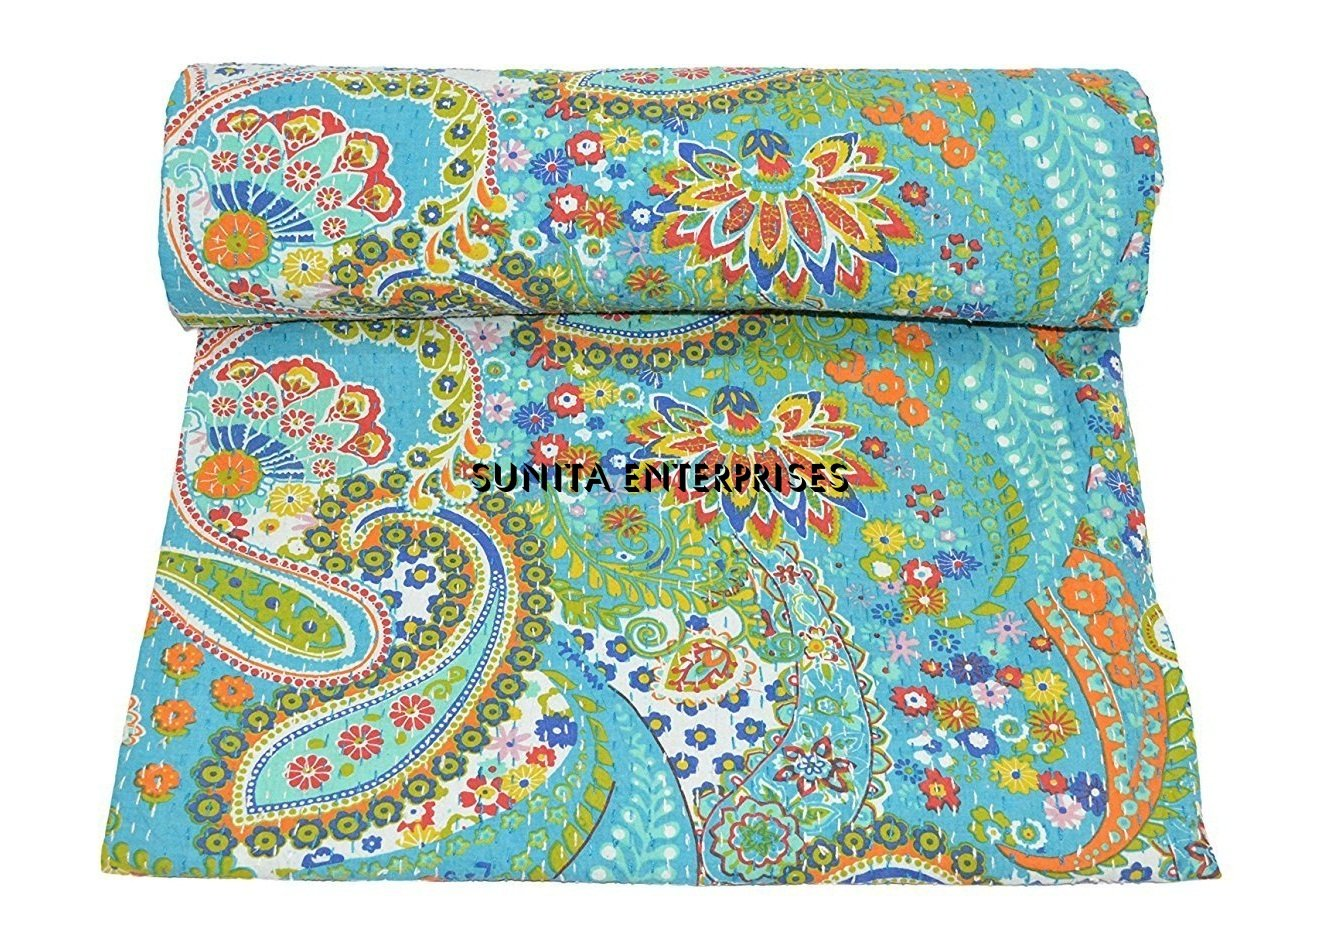 Twin Kantha Quilt Indian Paisley Bedspread Bedding Gudari Throw Kantha Blanket Quilts, Bedspreads & Coverlets Home & Garden